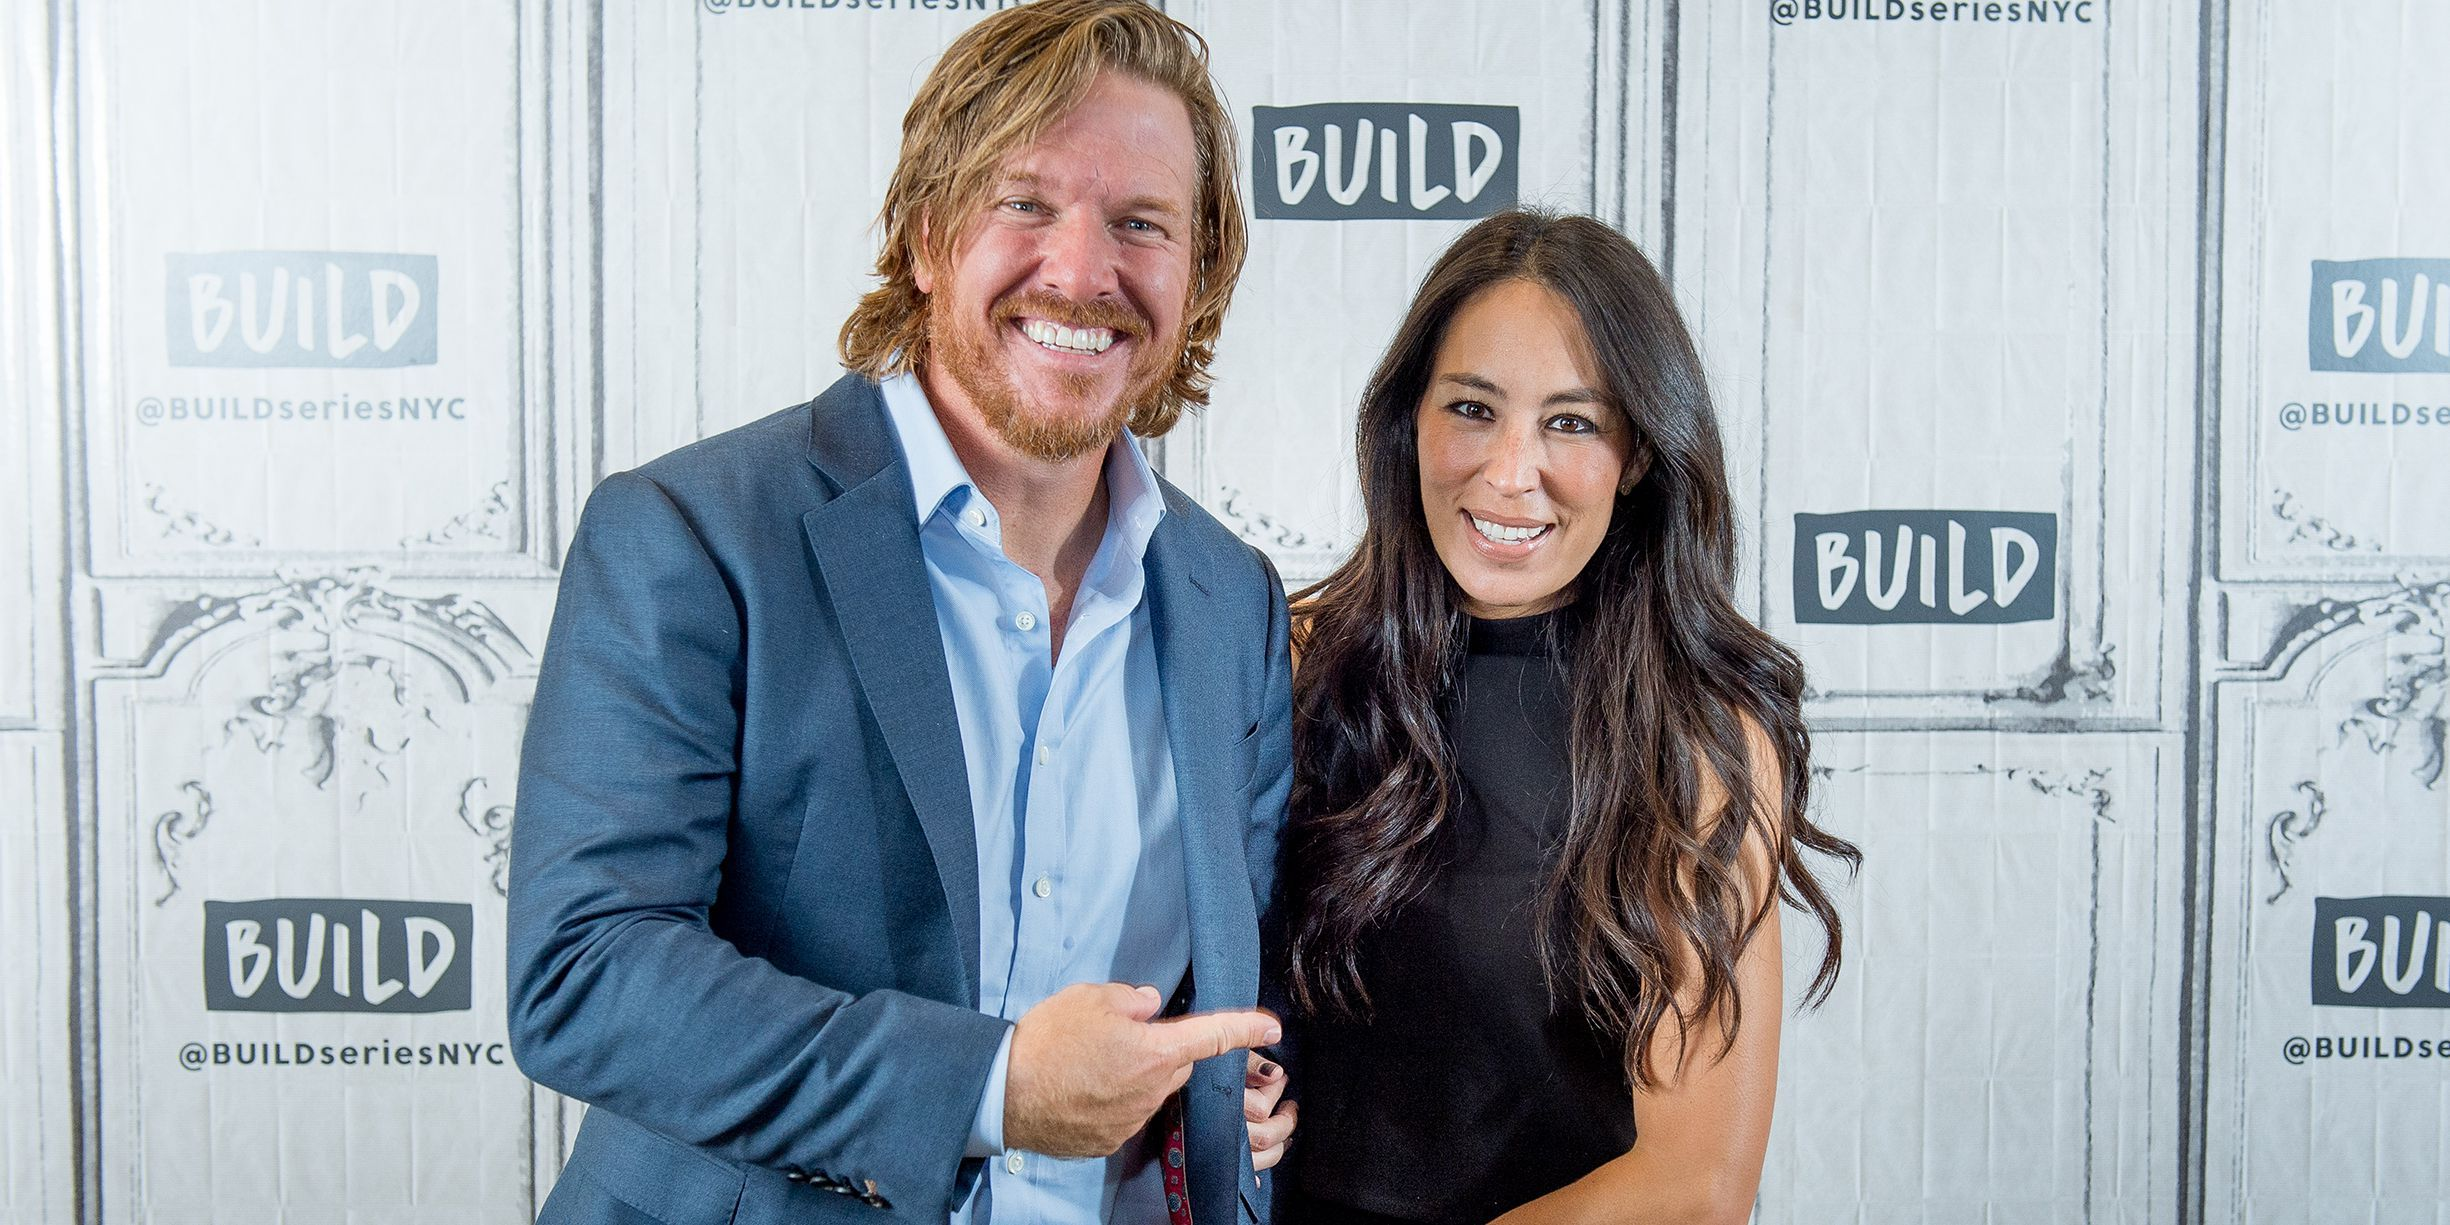 how old is joanna gaines